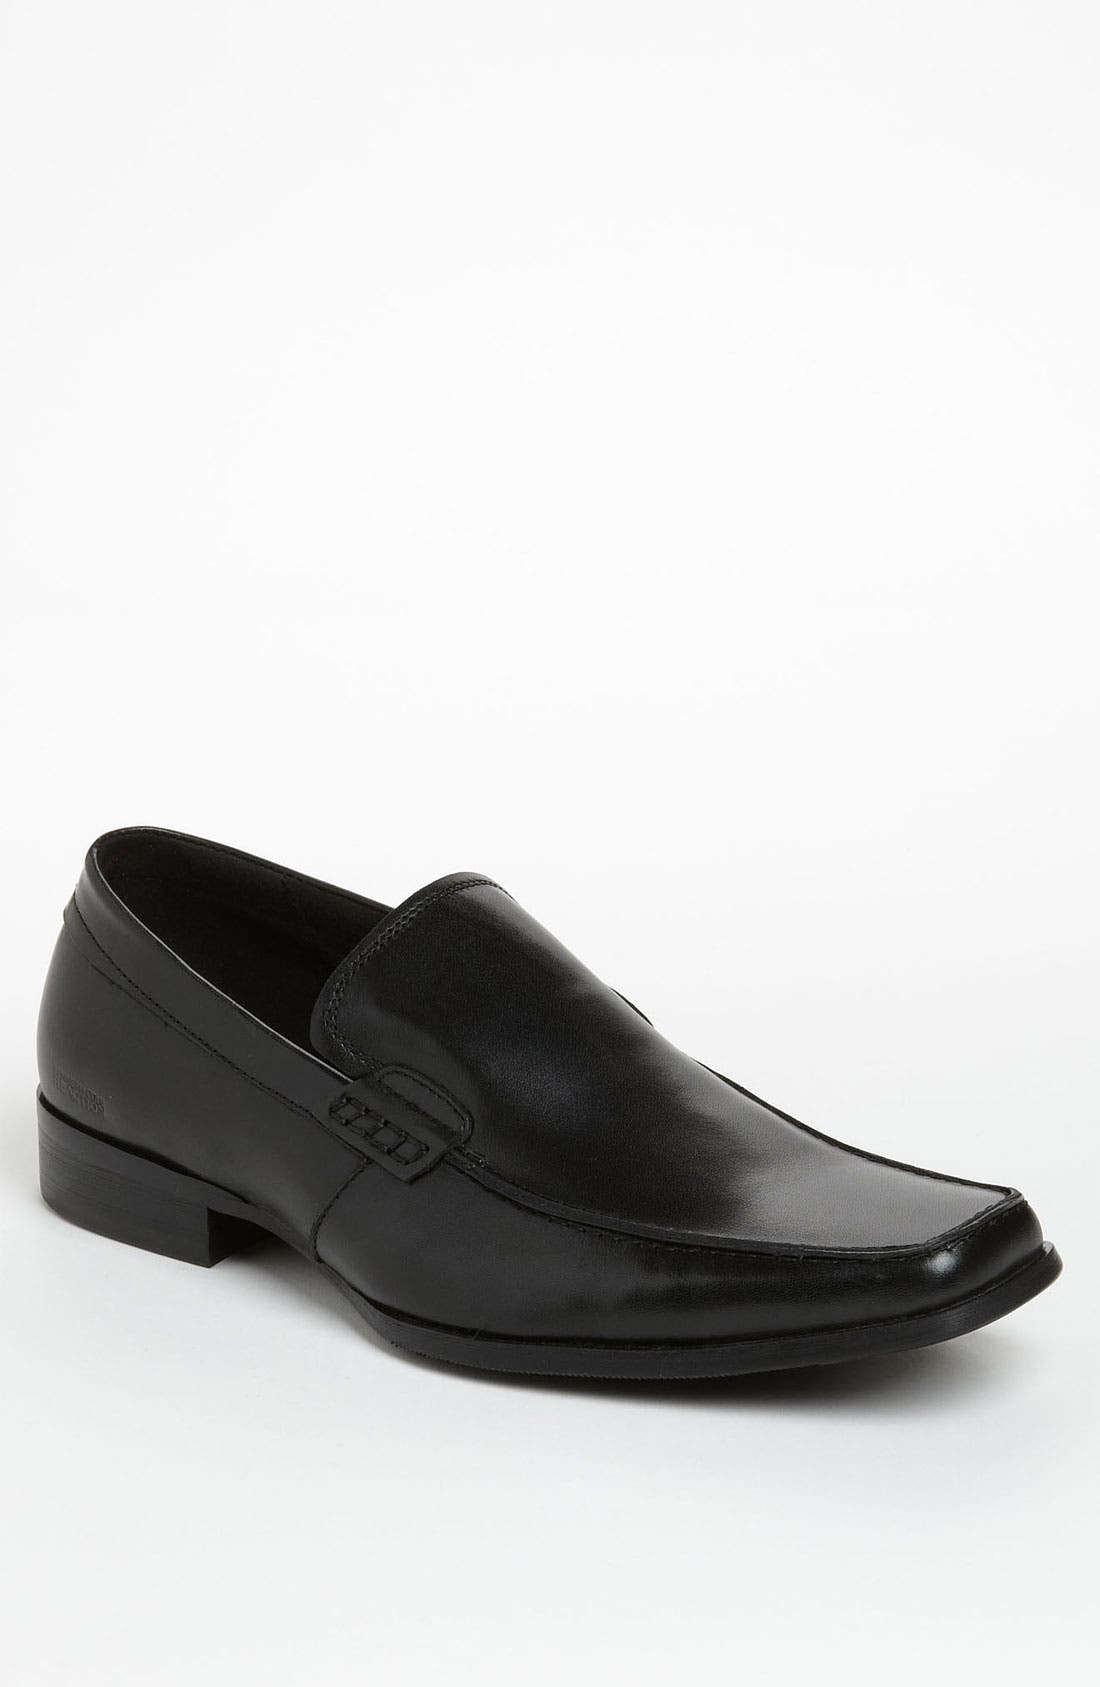 Main Image - Kenneth Cole Reaction 'Foot Model' Loafer (Online Only)